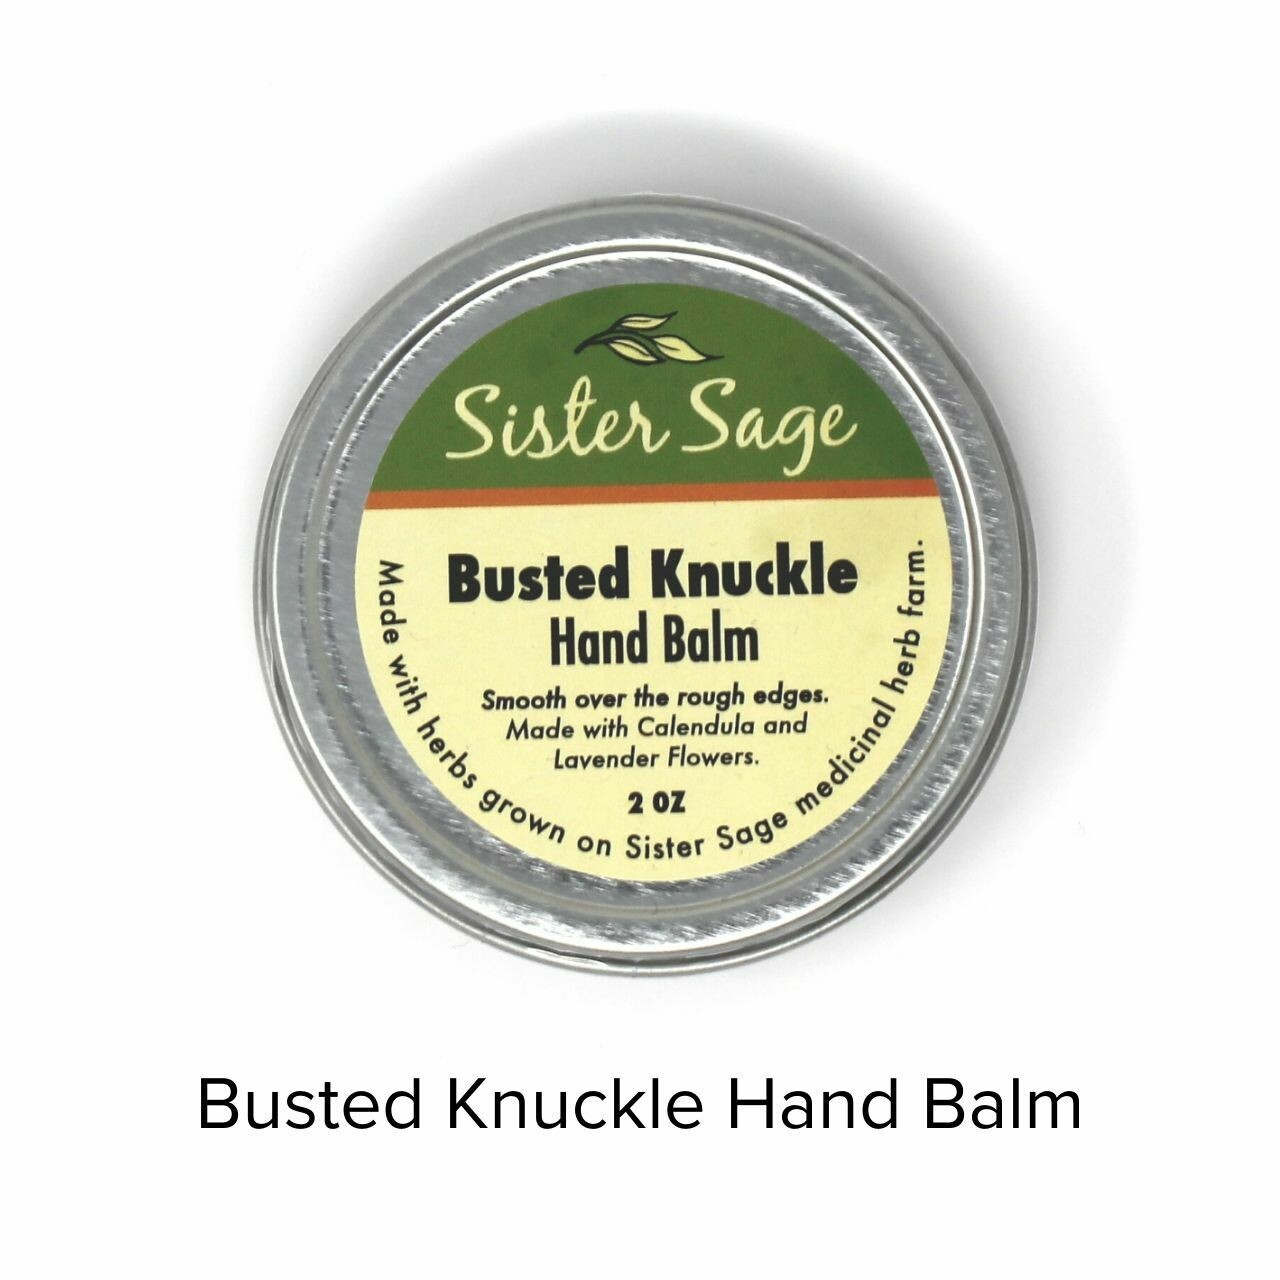 Sister Sage Balm Busted Knuckle